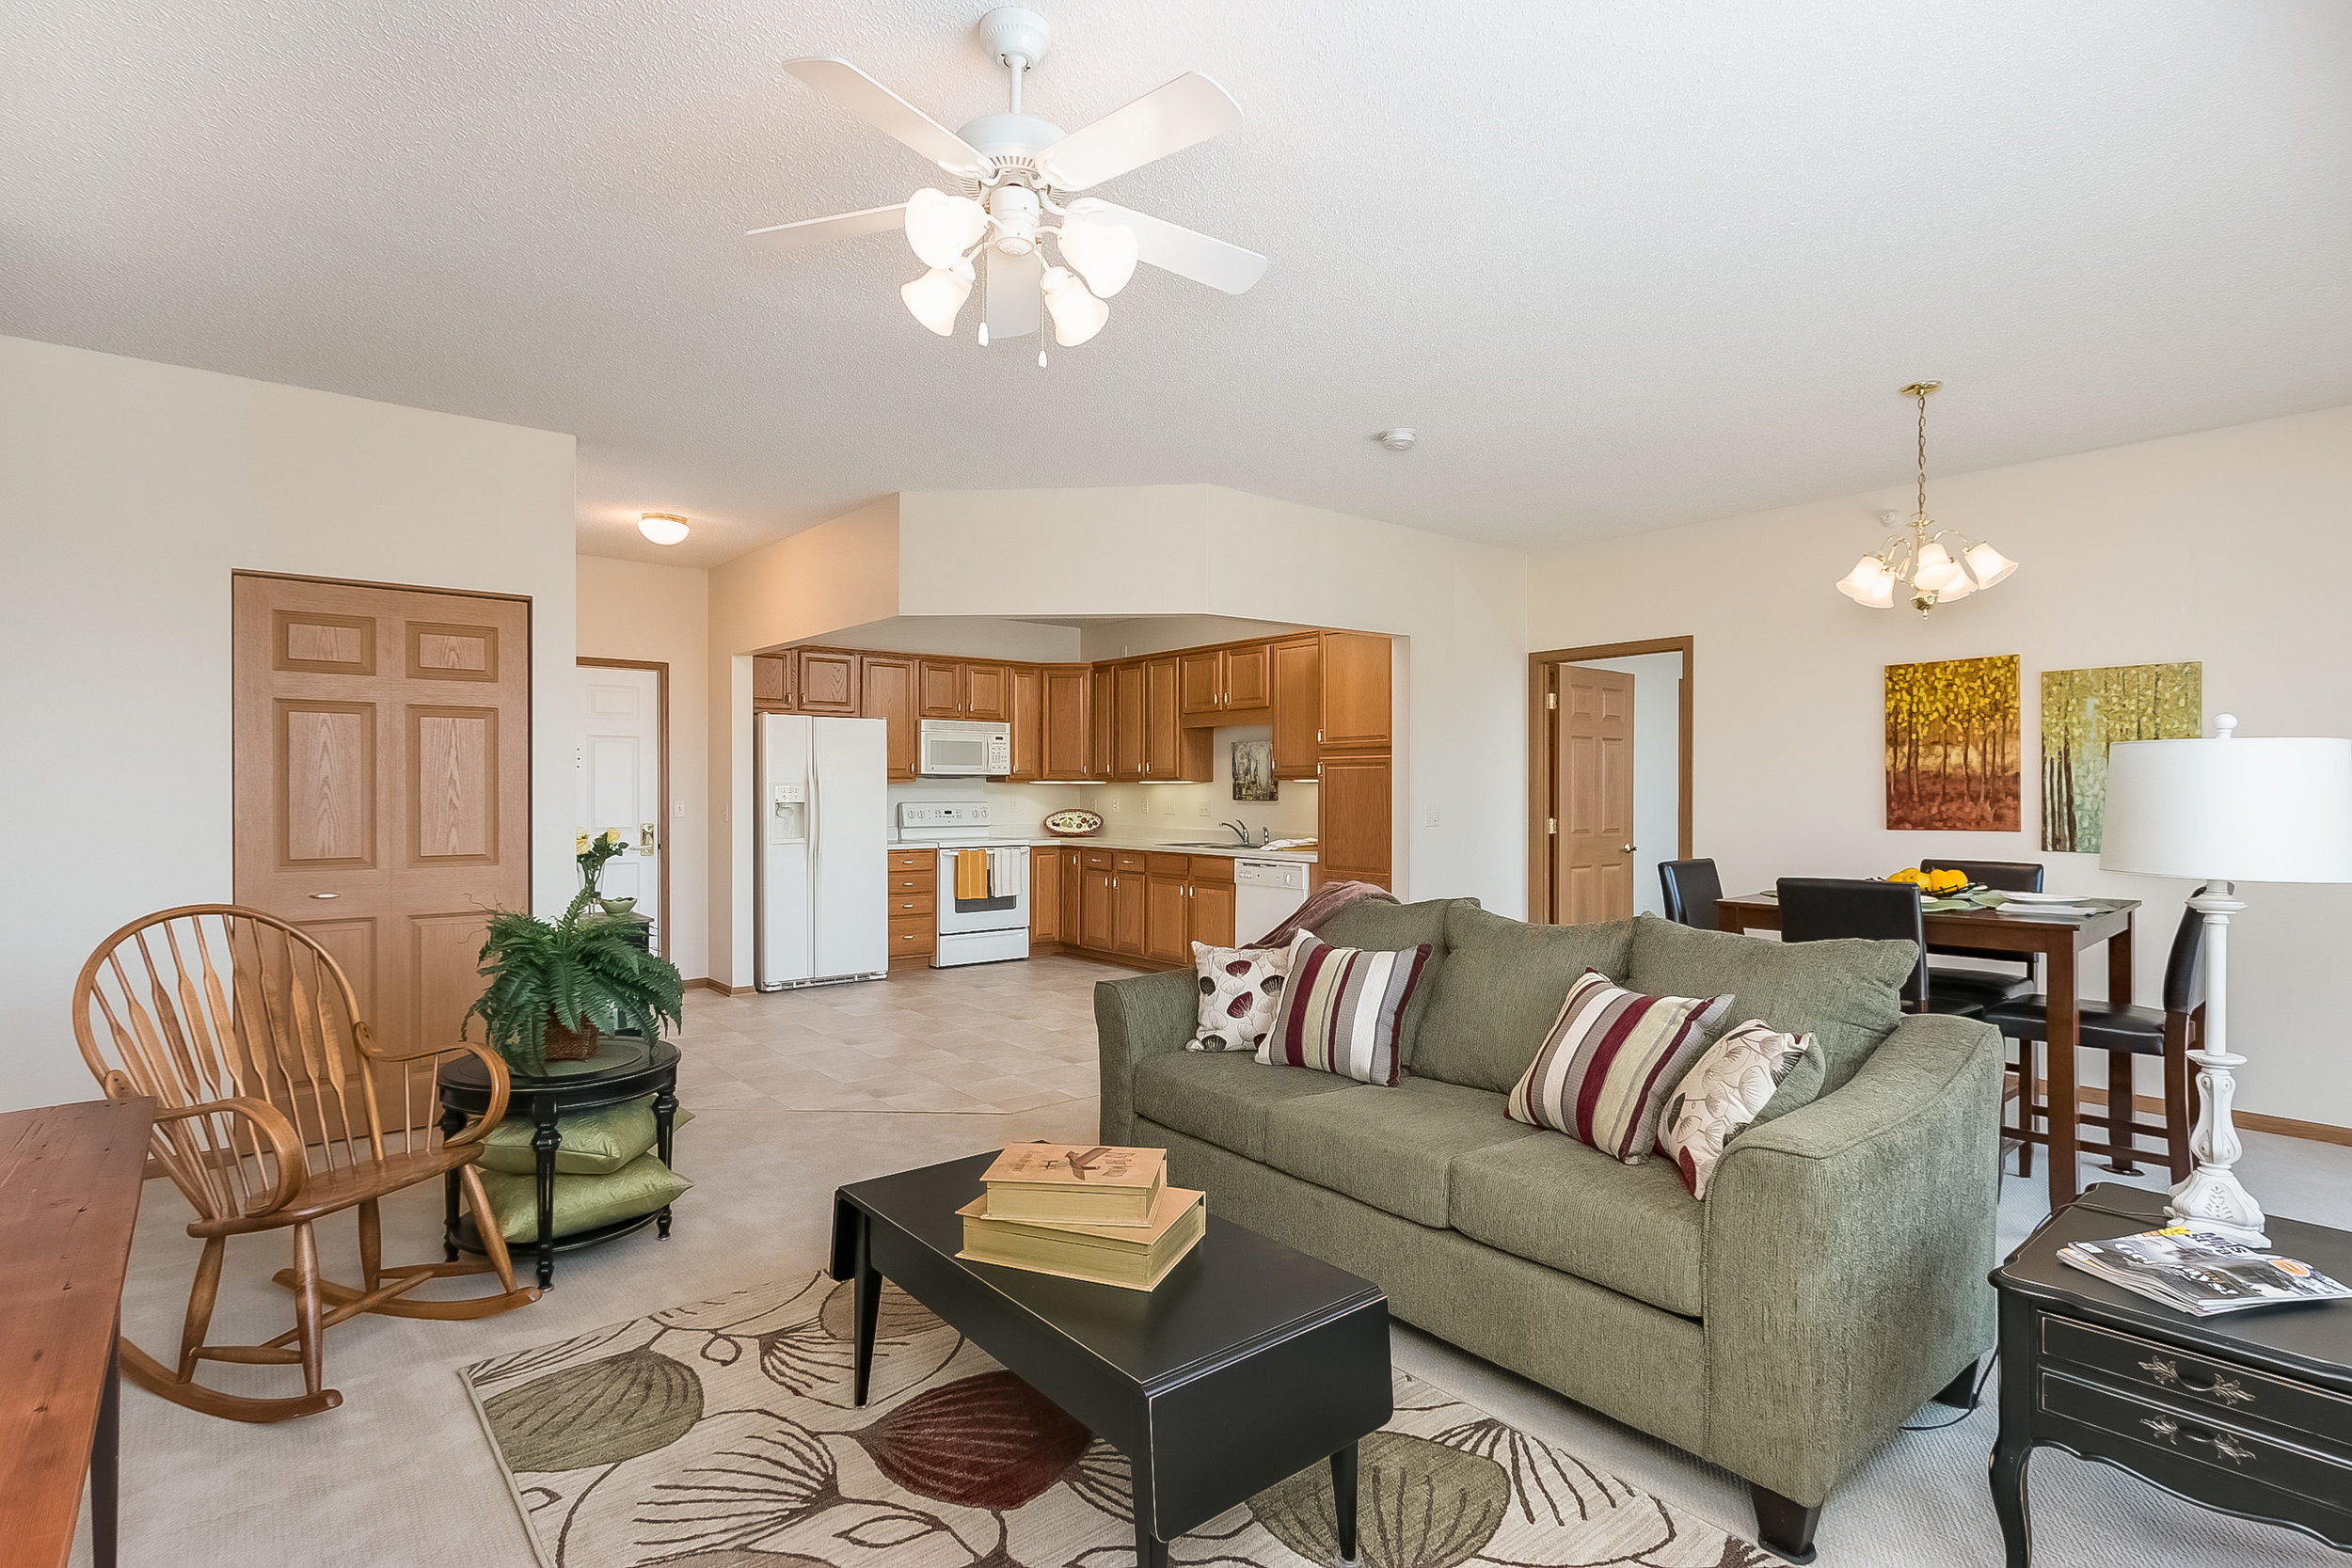 Staged Applewood home ready for sale